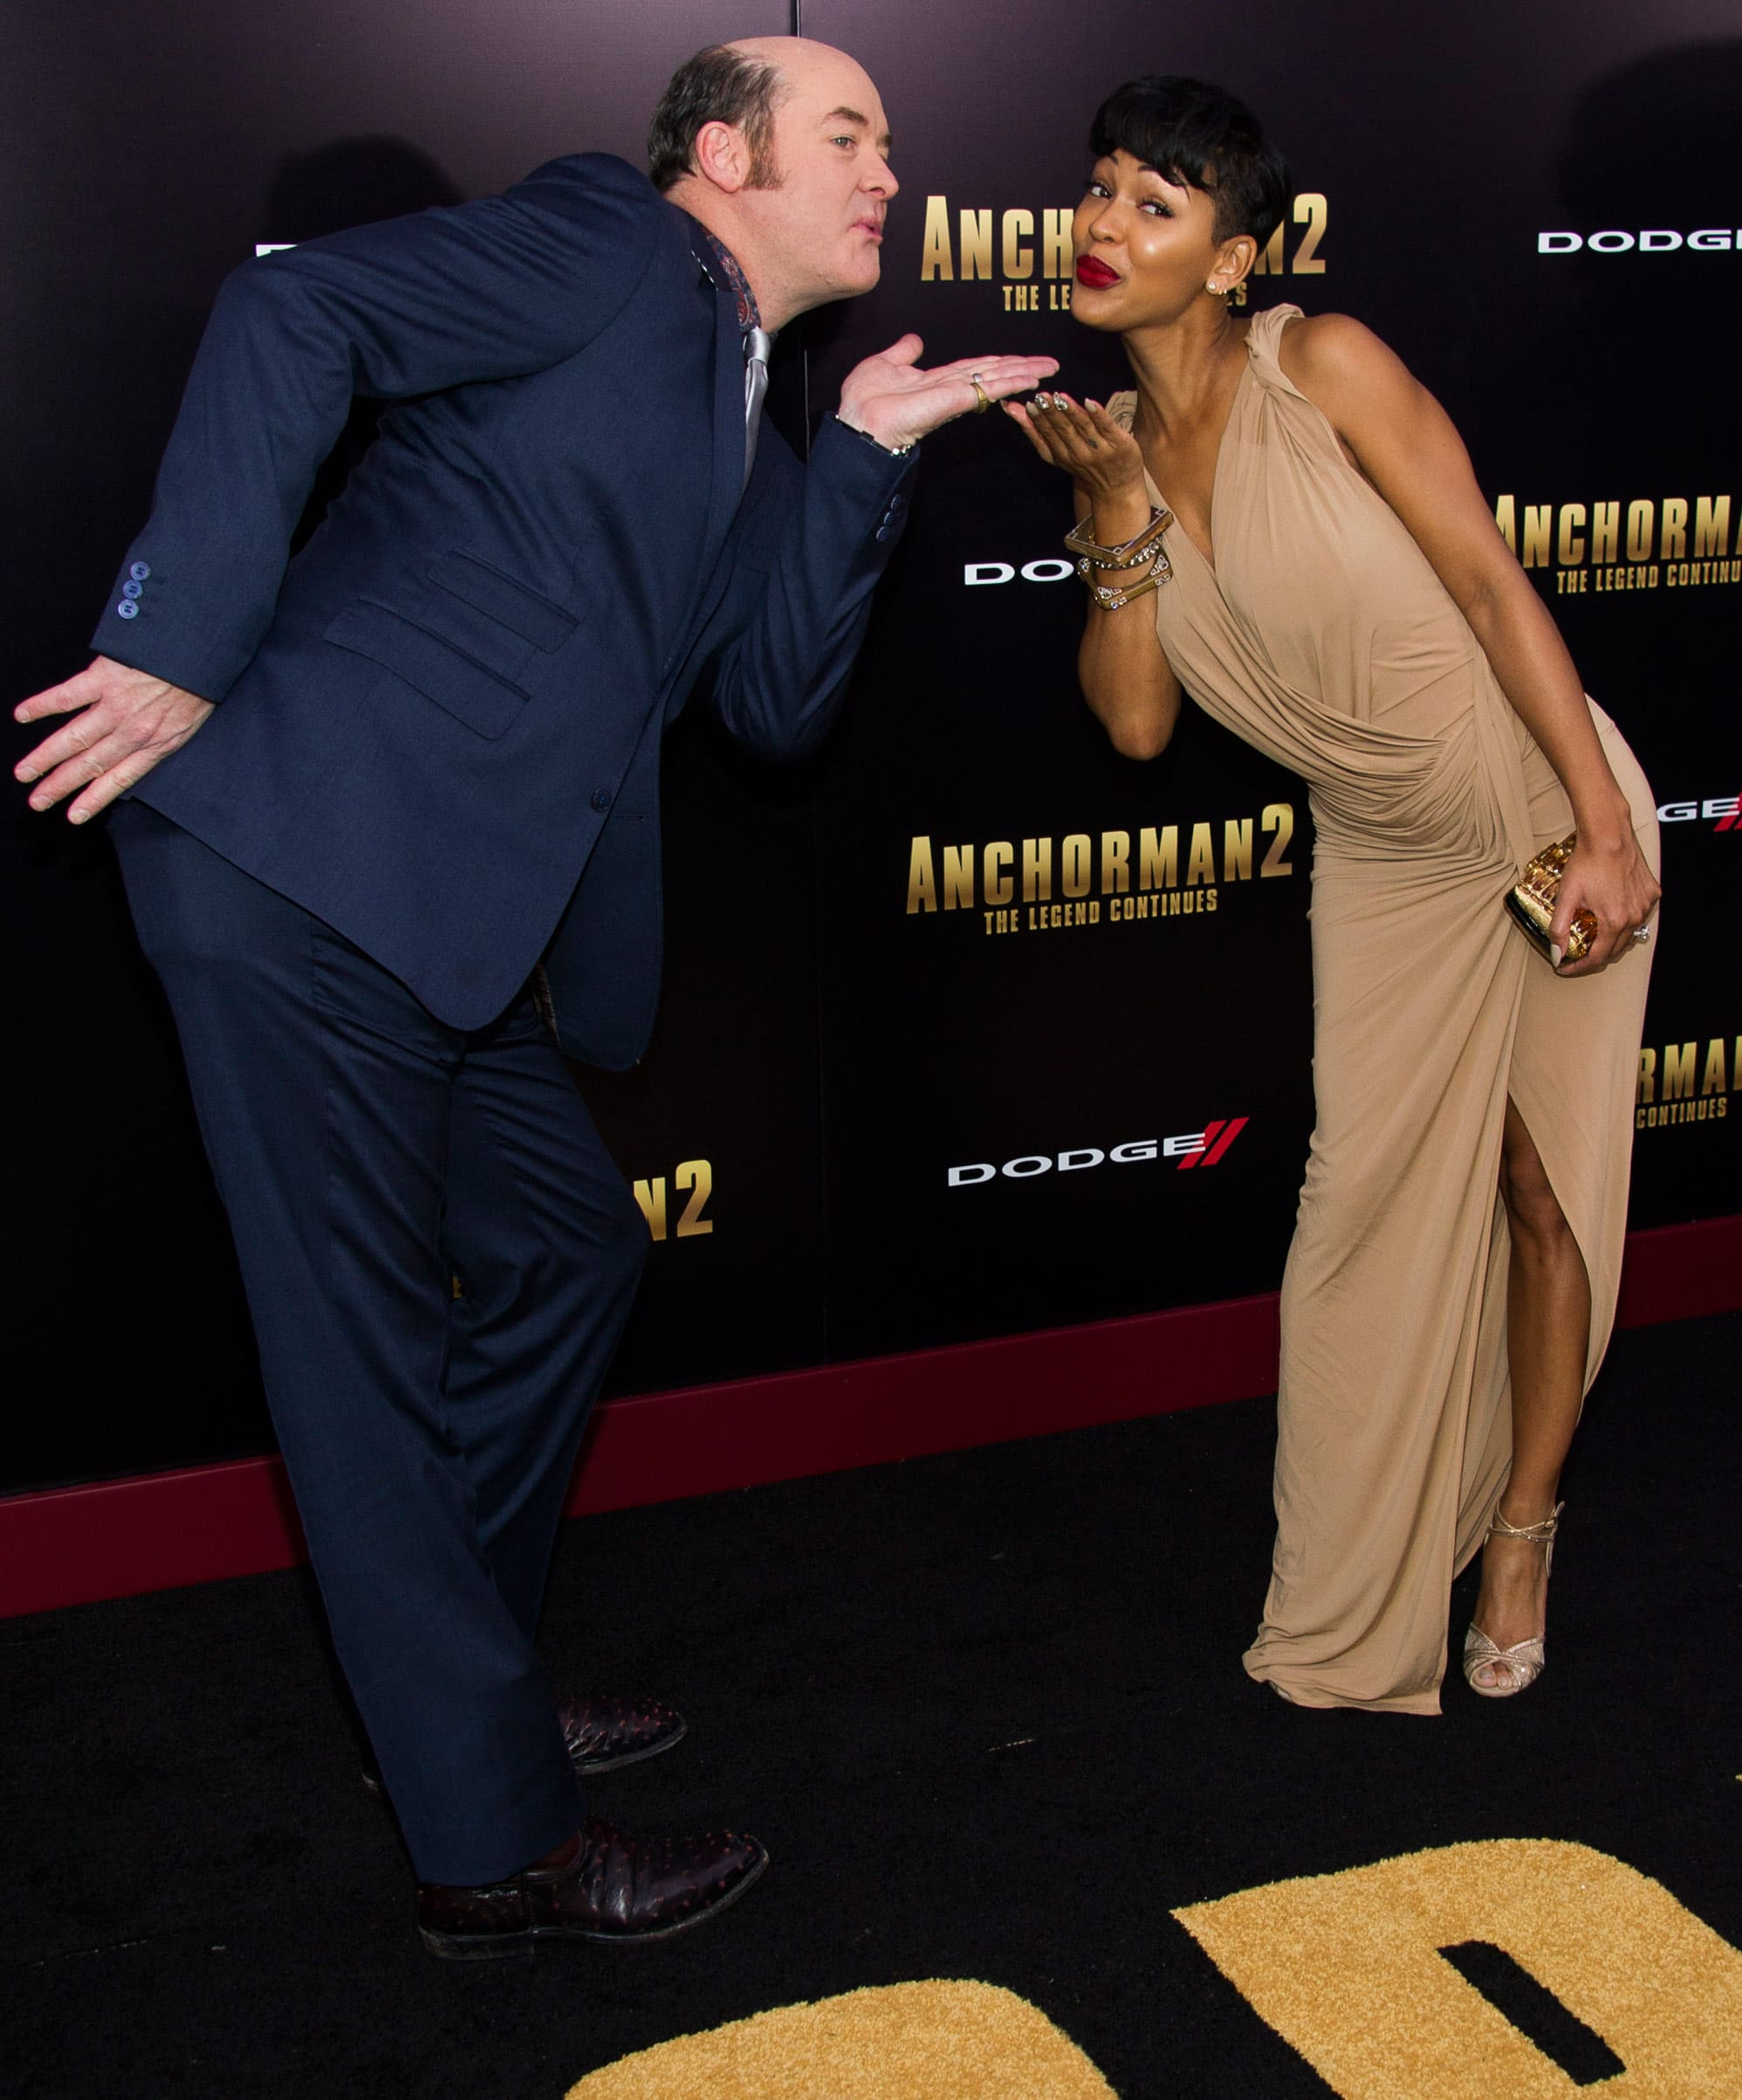 David Koechner, left, and Meagan Good attend the `Anchorman 2: The Legend Continues` premiere in New York.